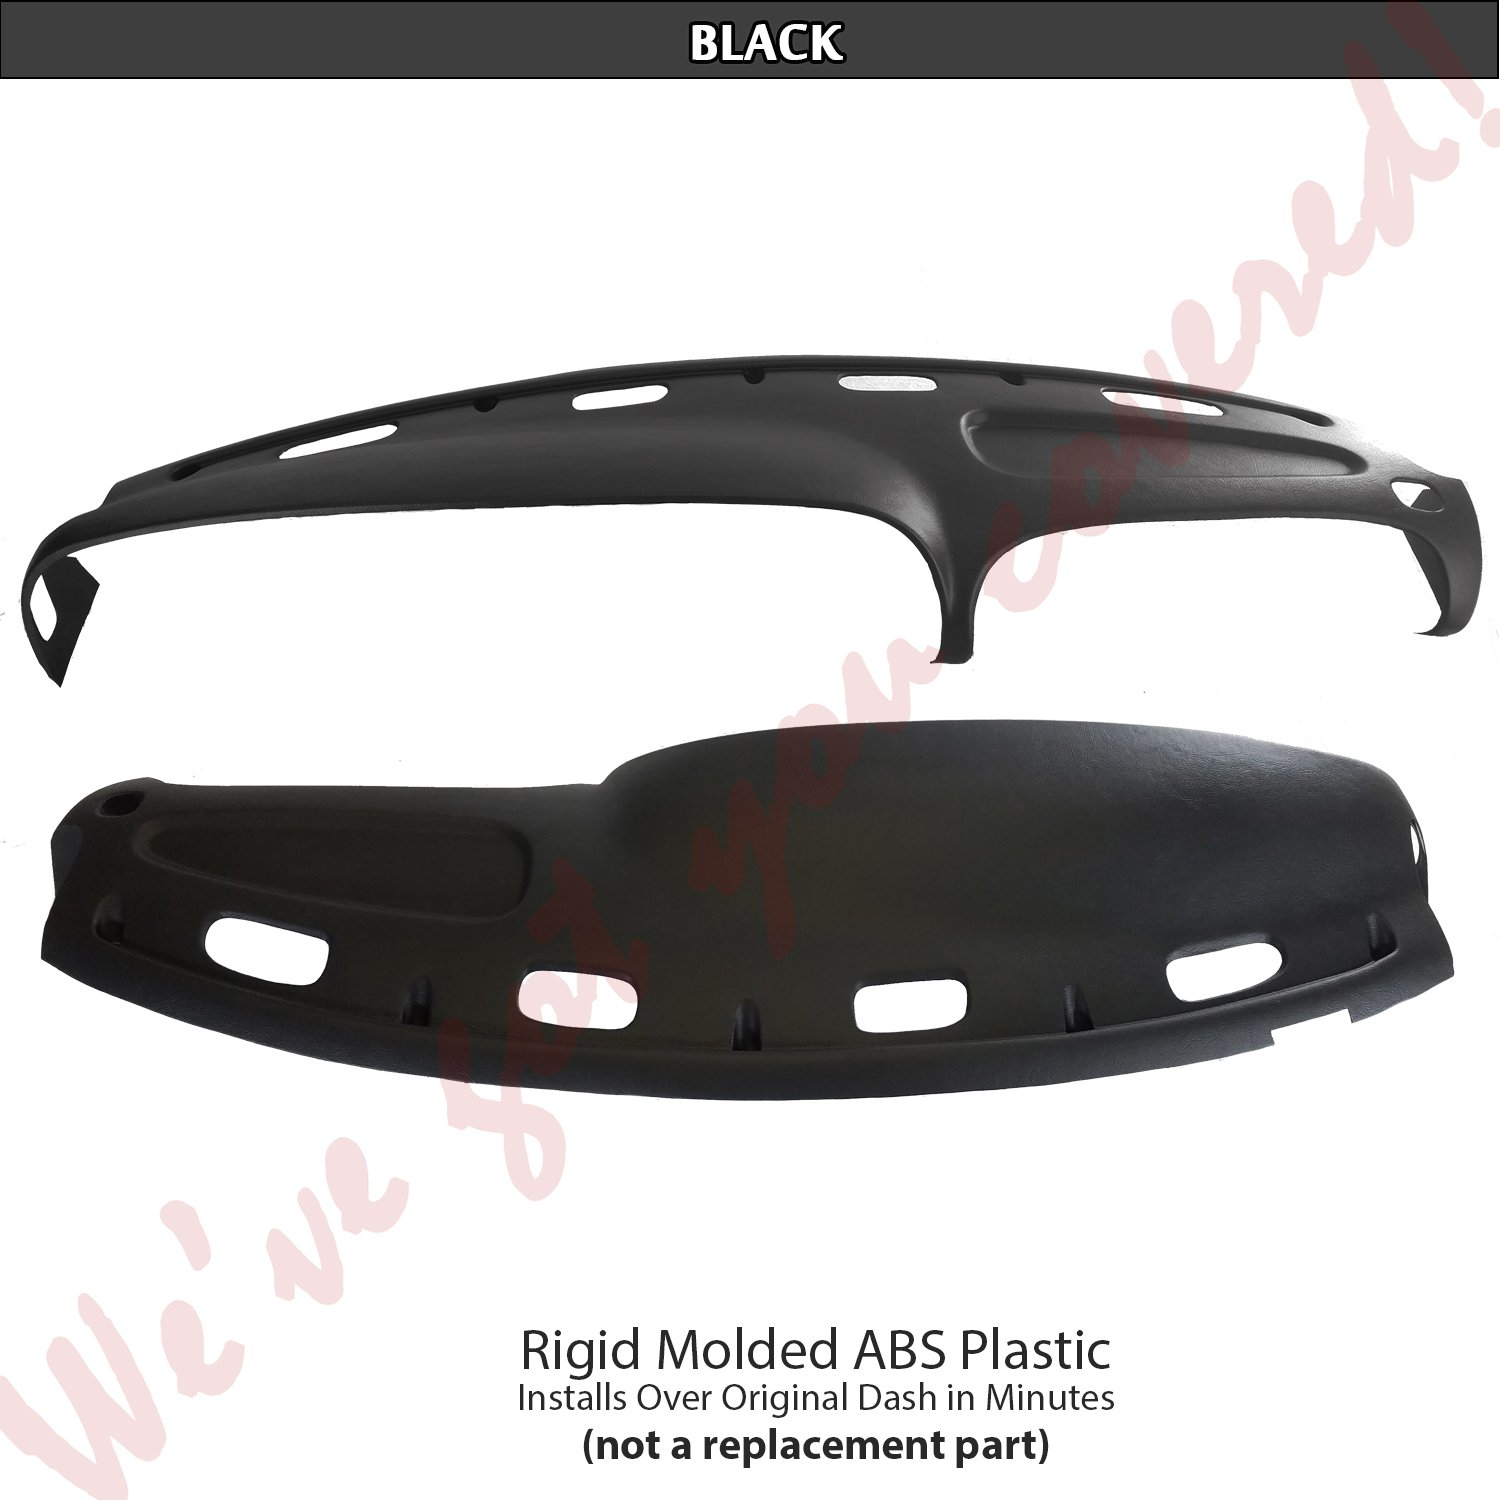 DashSkin Molded Dash Cover Compatible with 98-01 Dodge Ram in Black